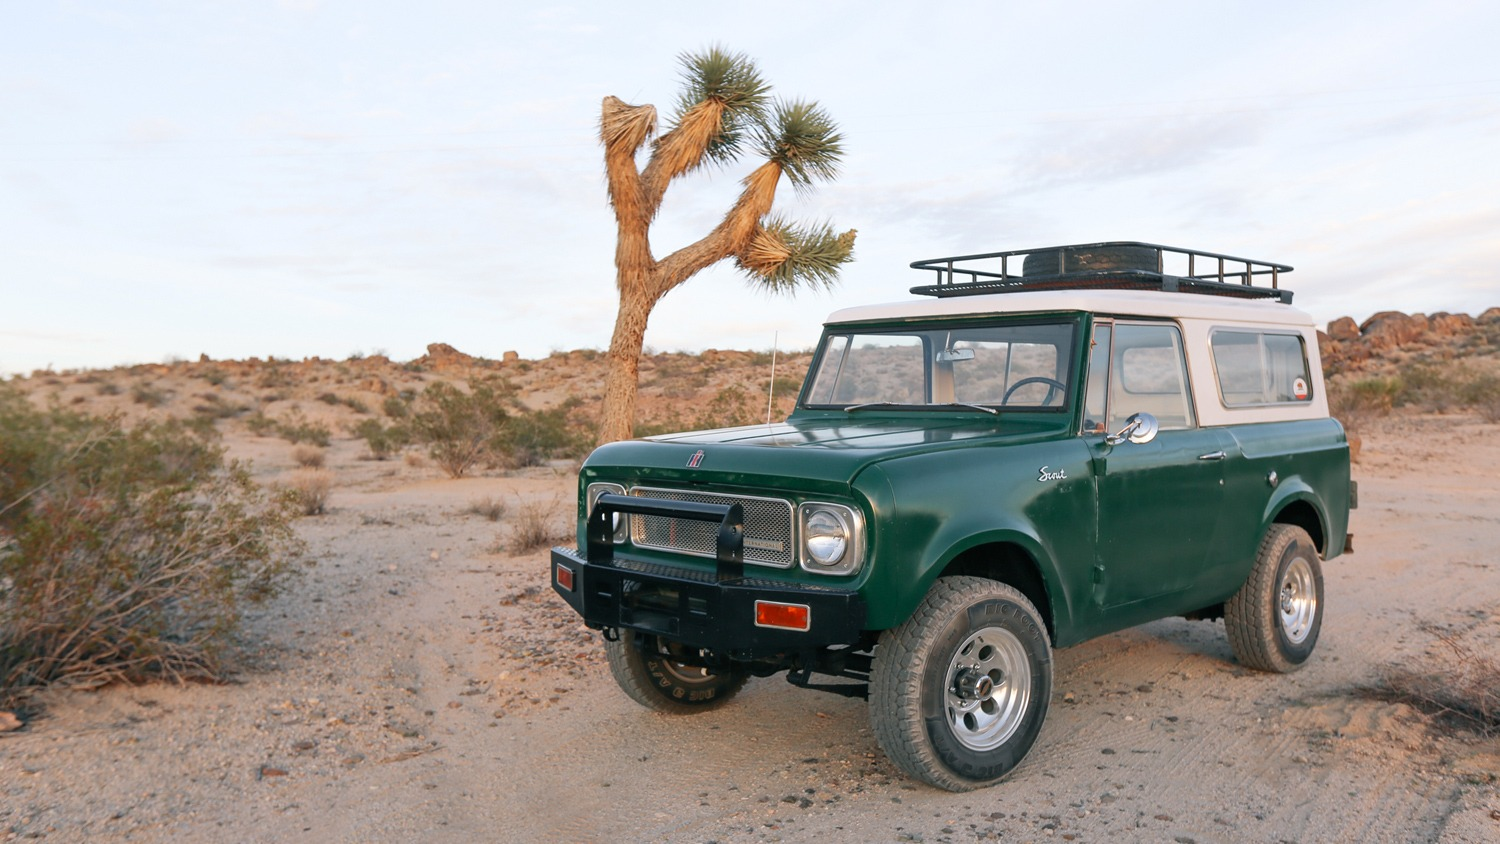 1969 International Harvester Scout 800A in Joshua Tree